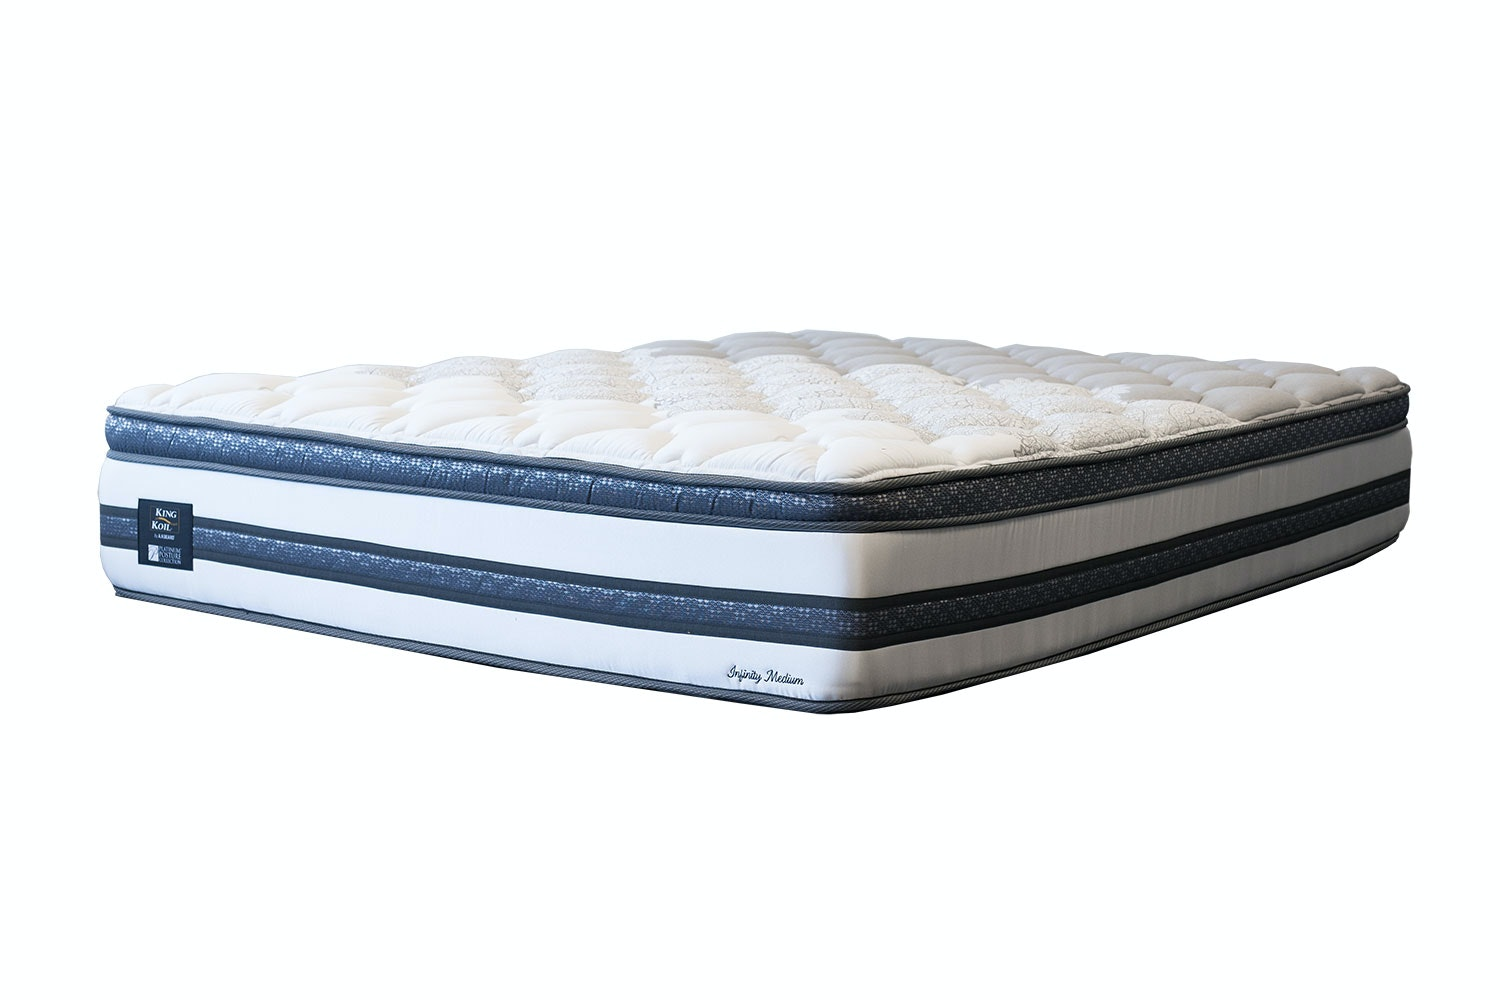 Infinity Medium King Single Mattress by King Koil